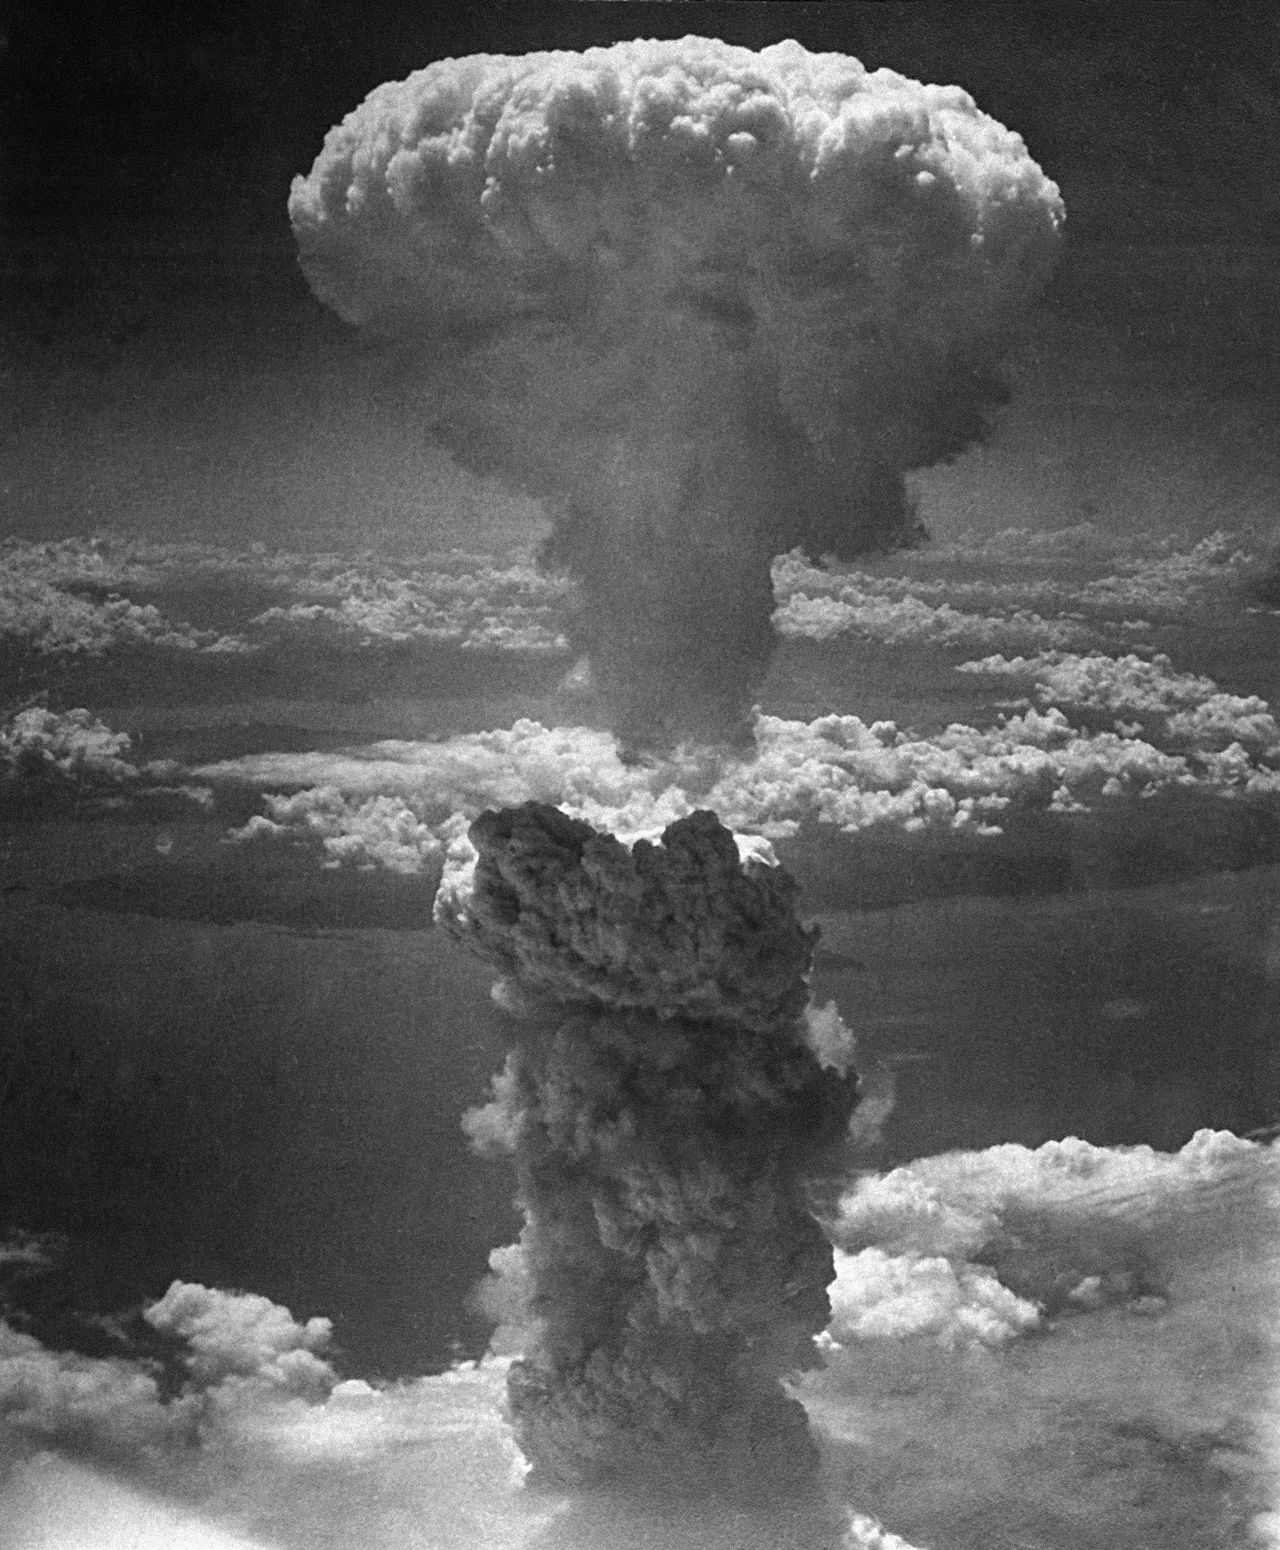 ** FILE - In this Aug. 9, 1945 black-and-white photo provided by the U.S. Air Force, a giant column of dark smoke rises more than 20,000 feet into the air, after the second atomic bomb ever used in warfare explodes over Nagasaki, Japan. (AP Photo/USAF)